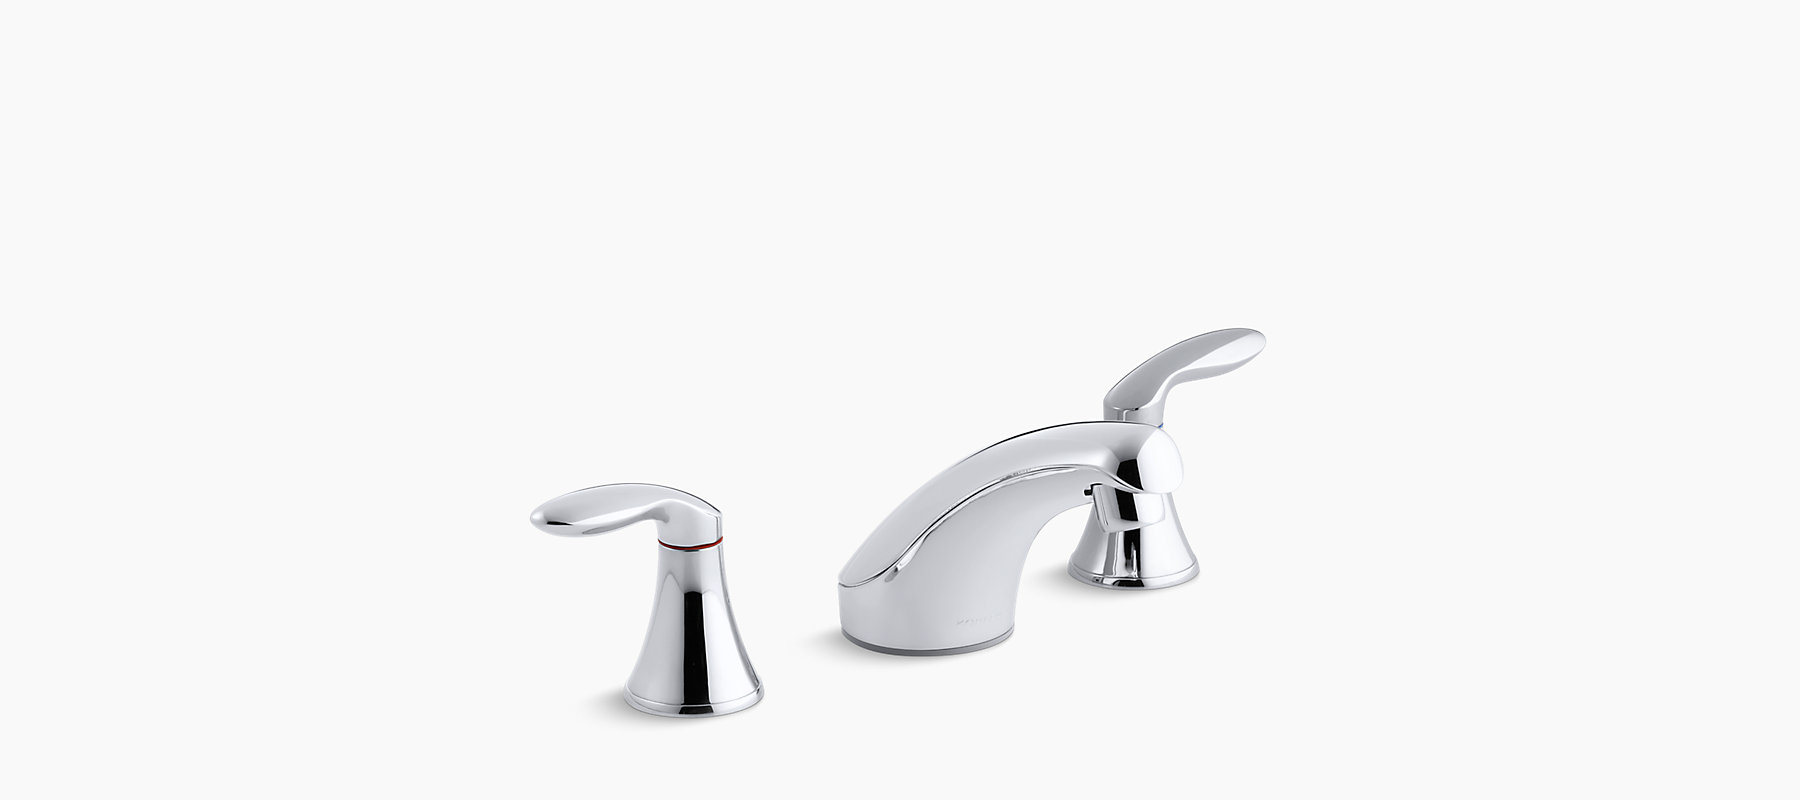 Coralais widespread commercial bathroom sink faucet with lever ...